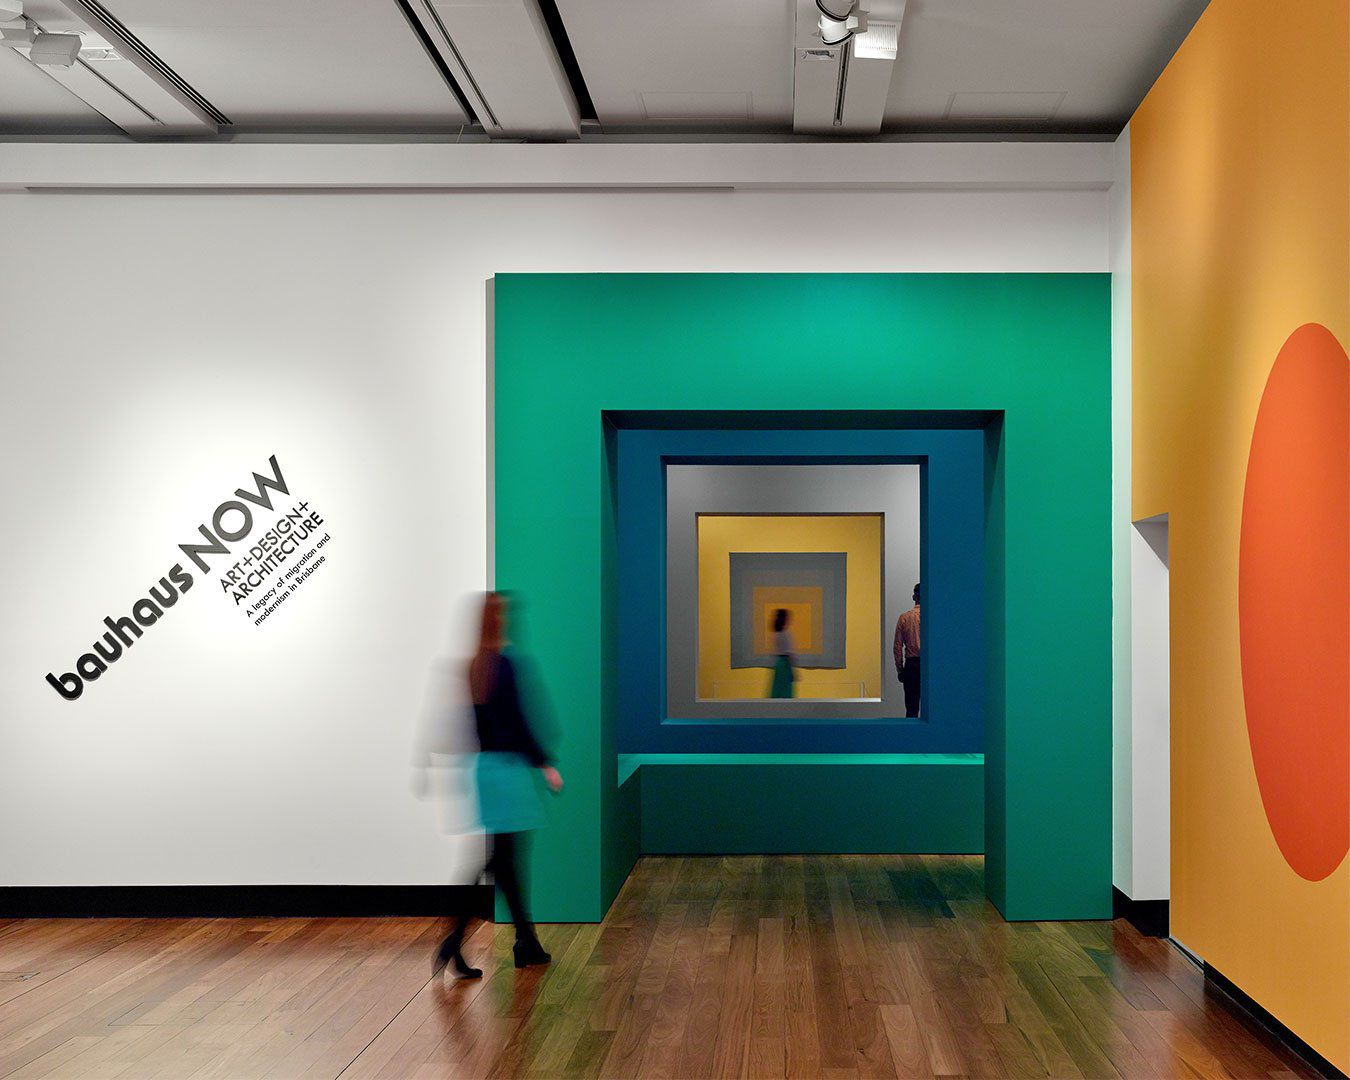 Entrance to Bauhaus exhibition with green, blue and orange geometric shapes